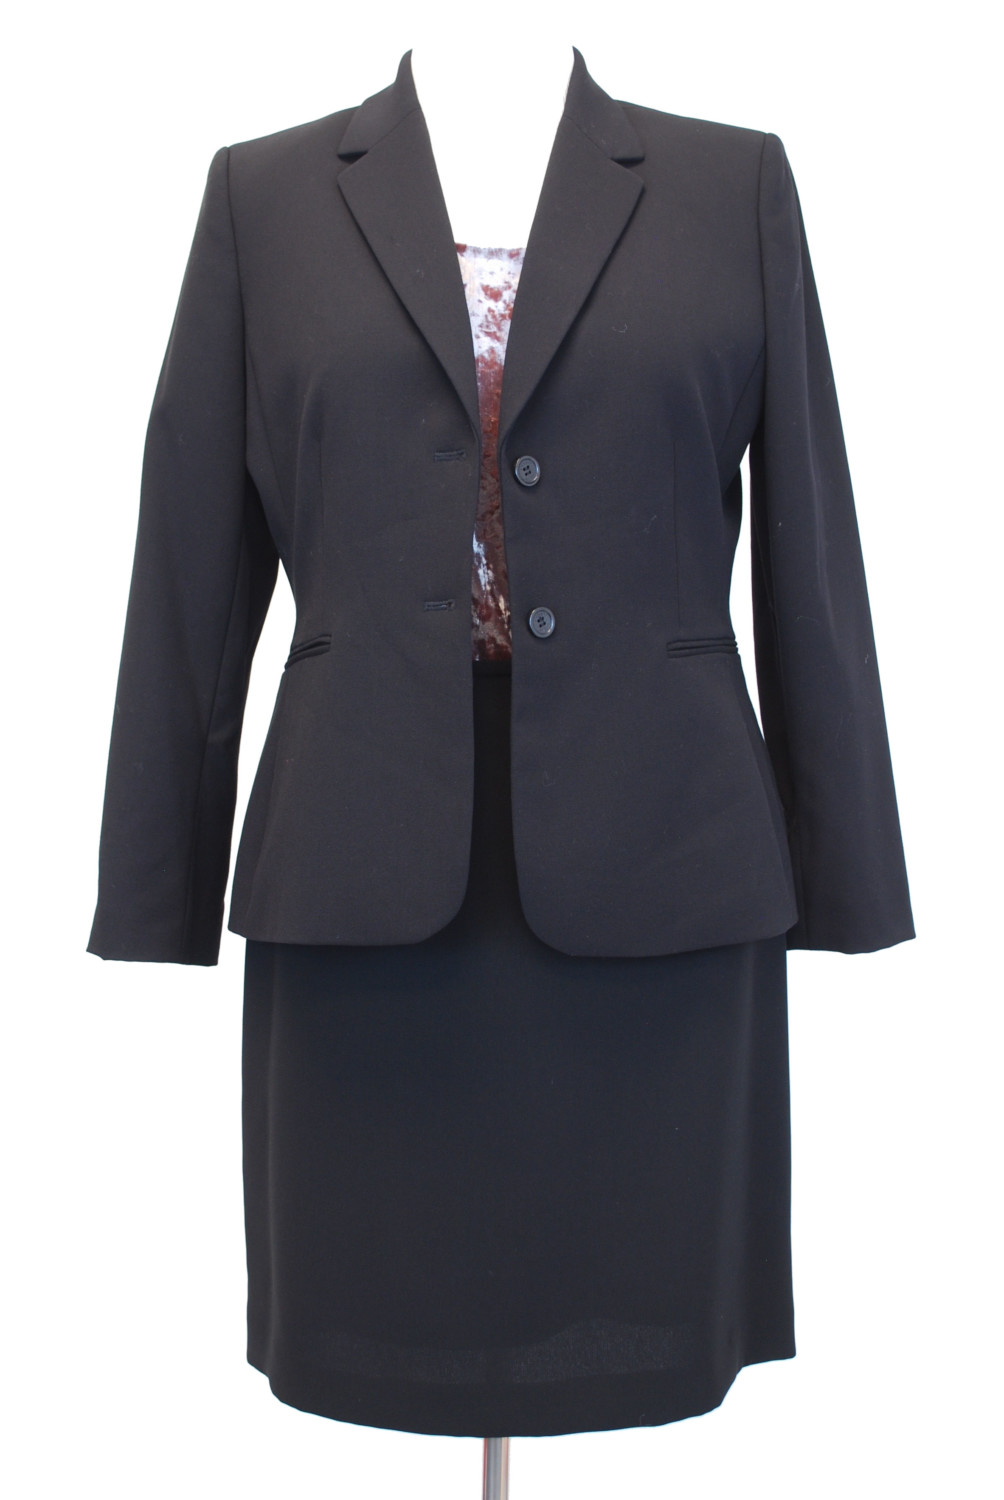 Tahari Suit – Original Retail: $249, CWS: $59